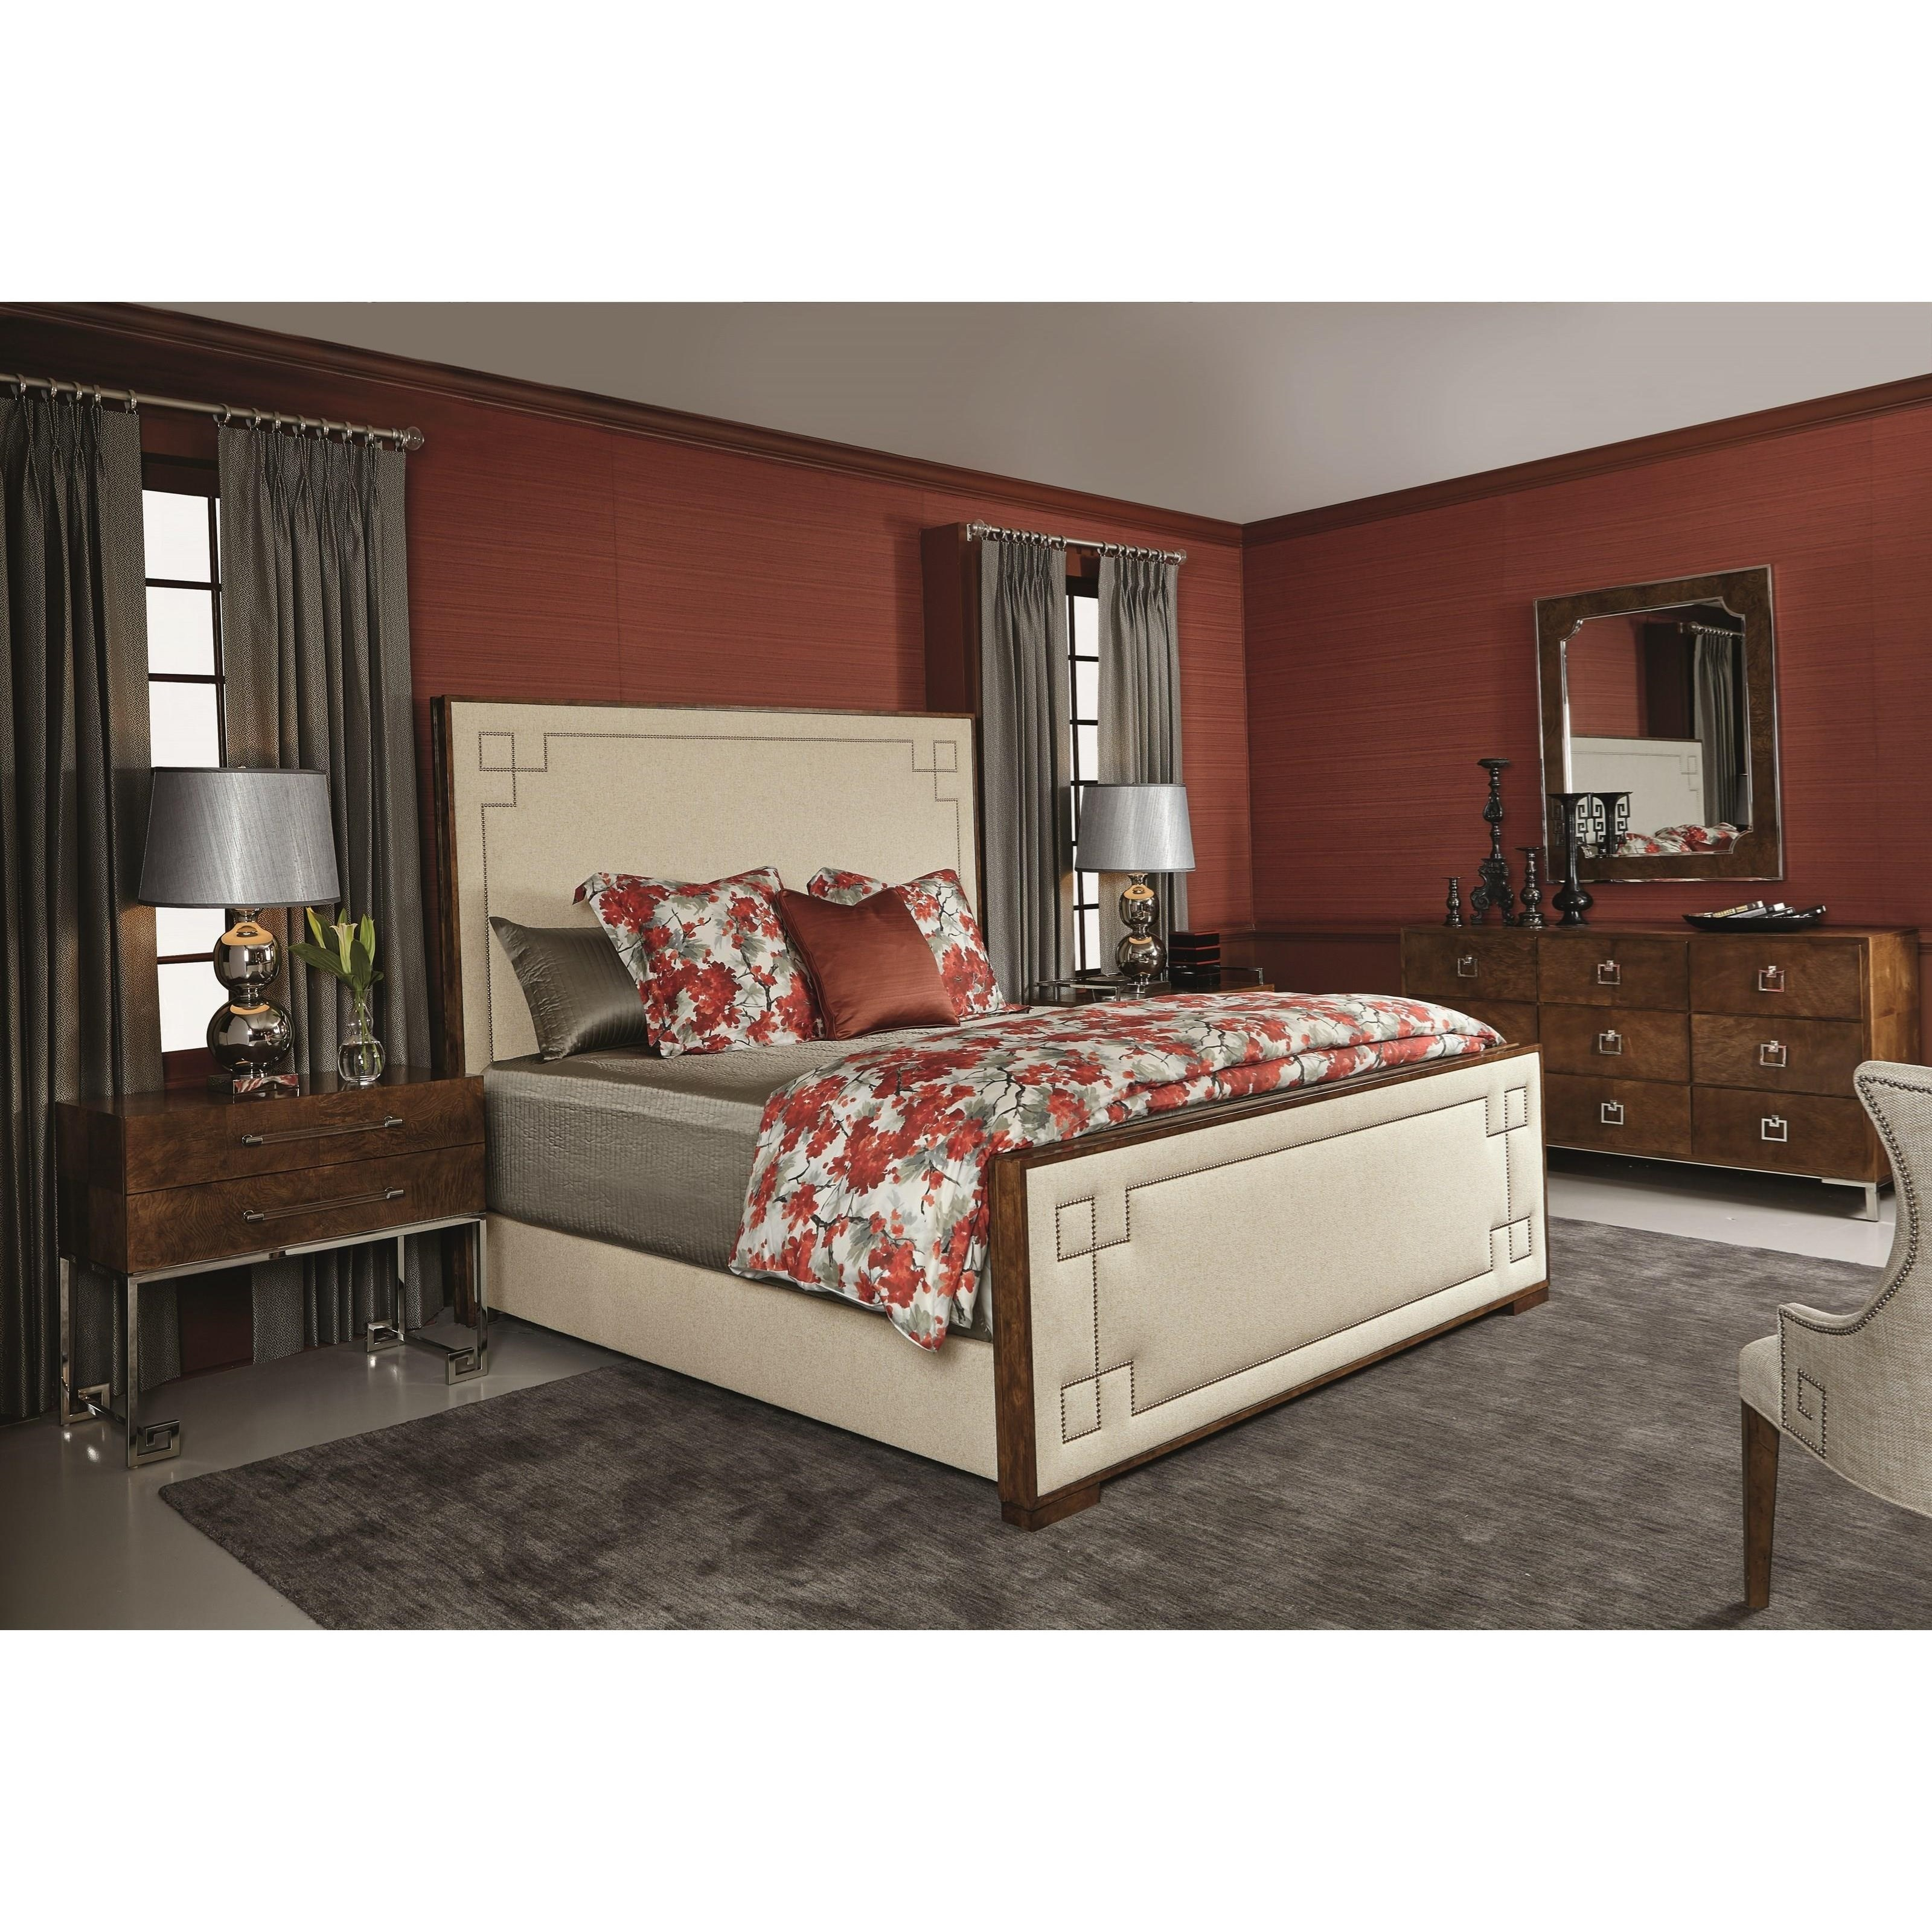 Bernhardt soho luxe 368 331 transitional mirror with - Stainless steel bedroom furniture ...